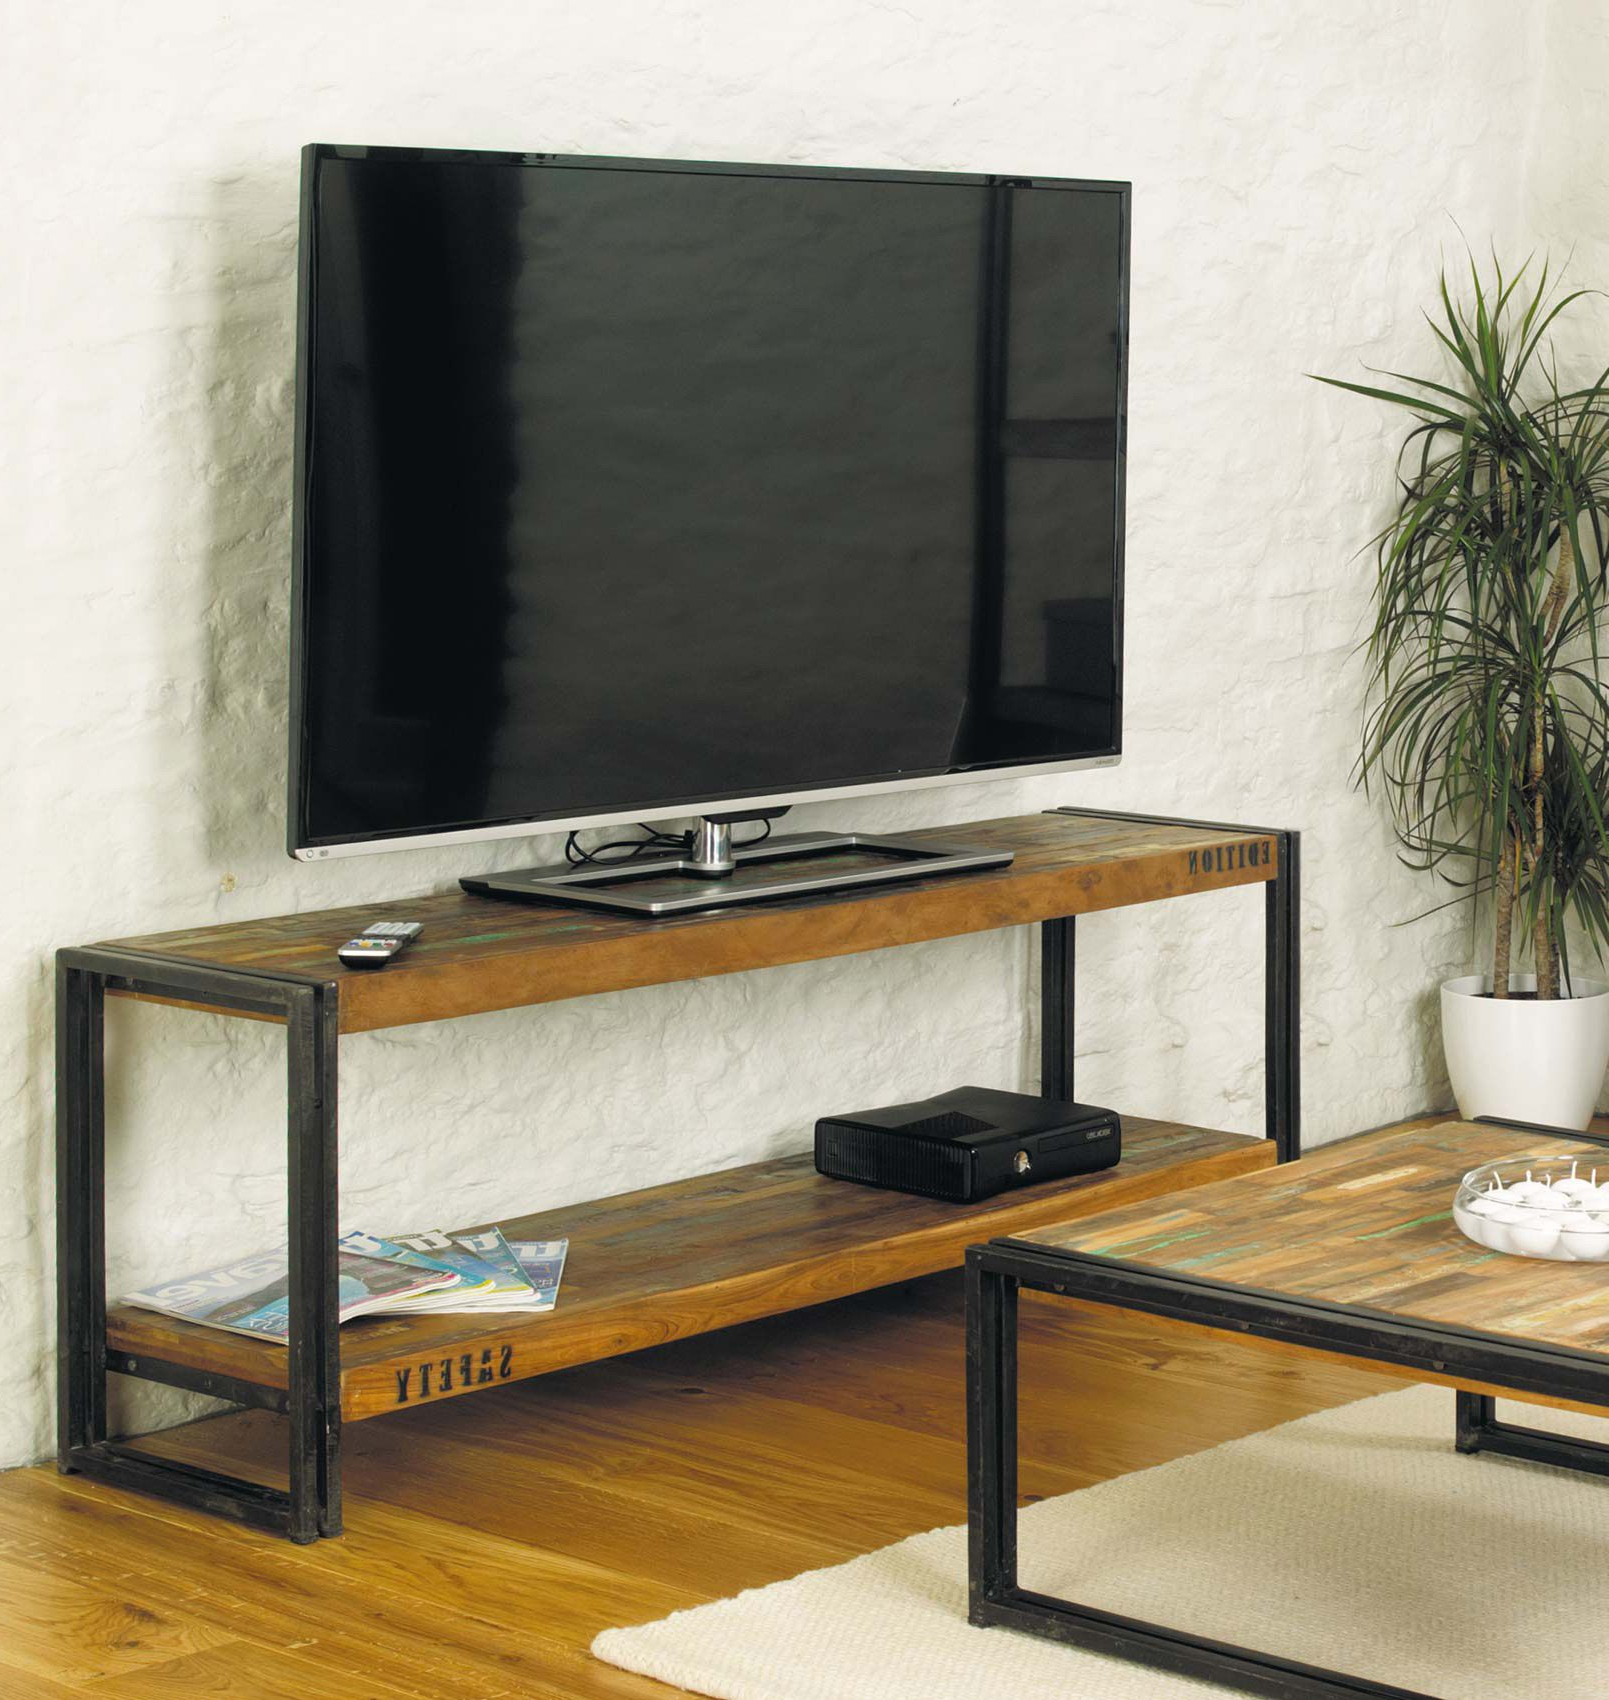 Tv Console Throughout Wooden Tv Stands And Cabinets (View 10 of 20)